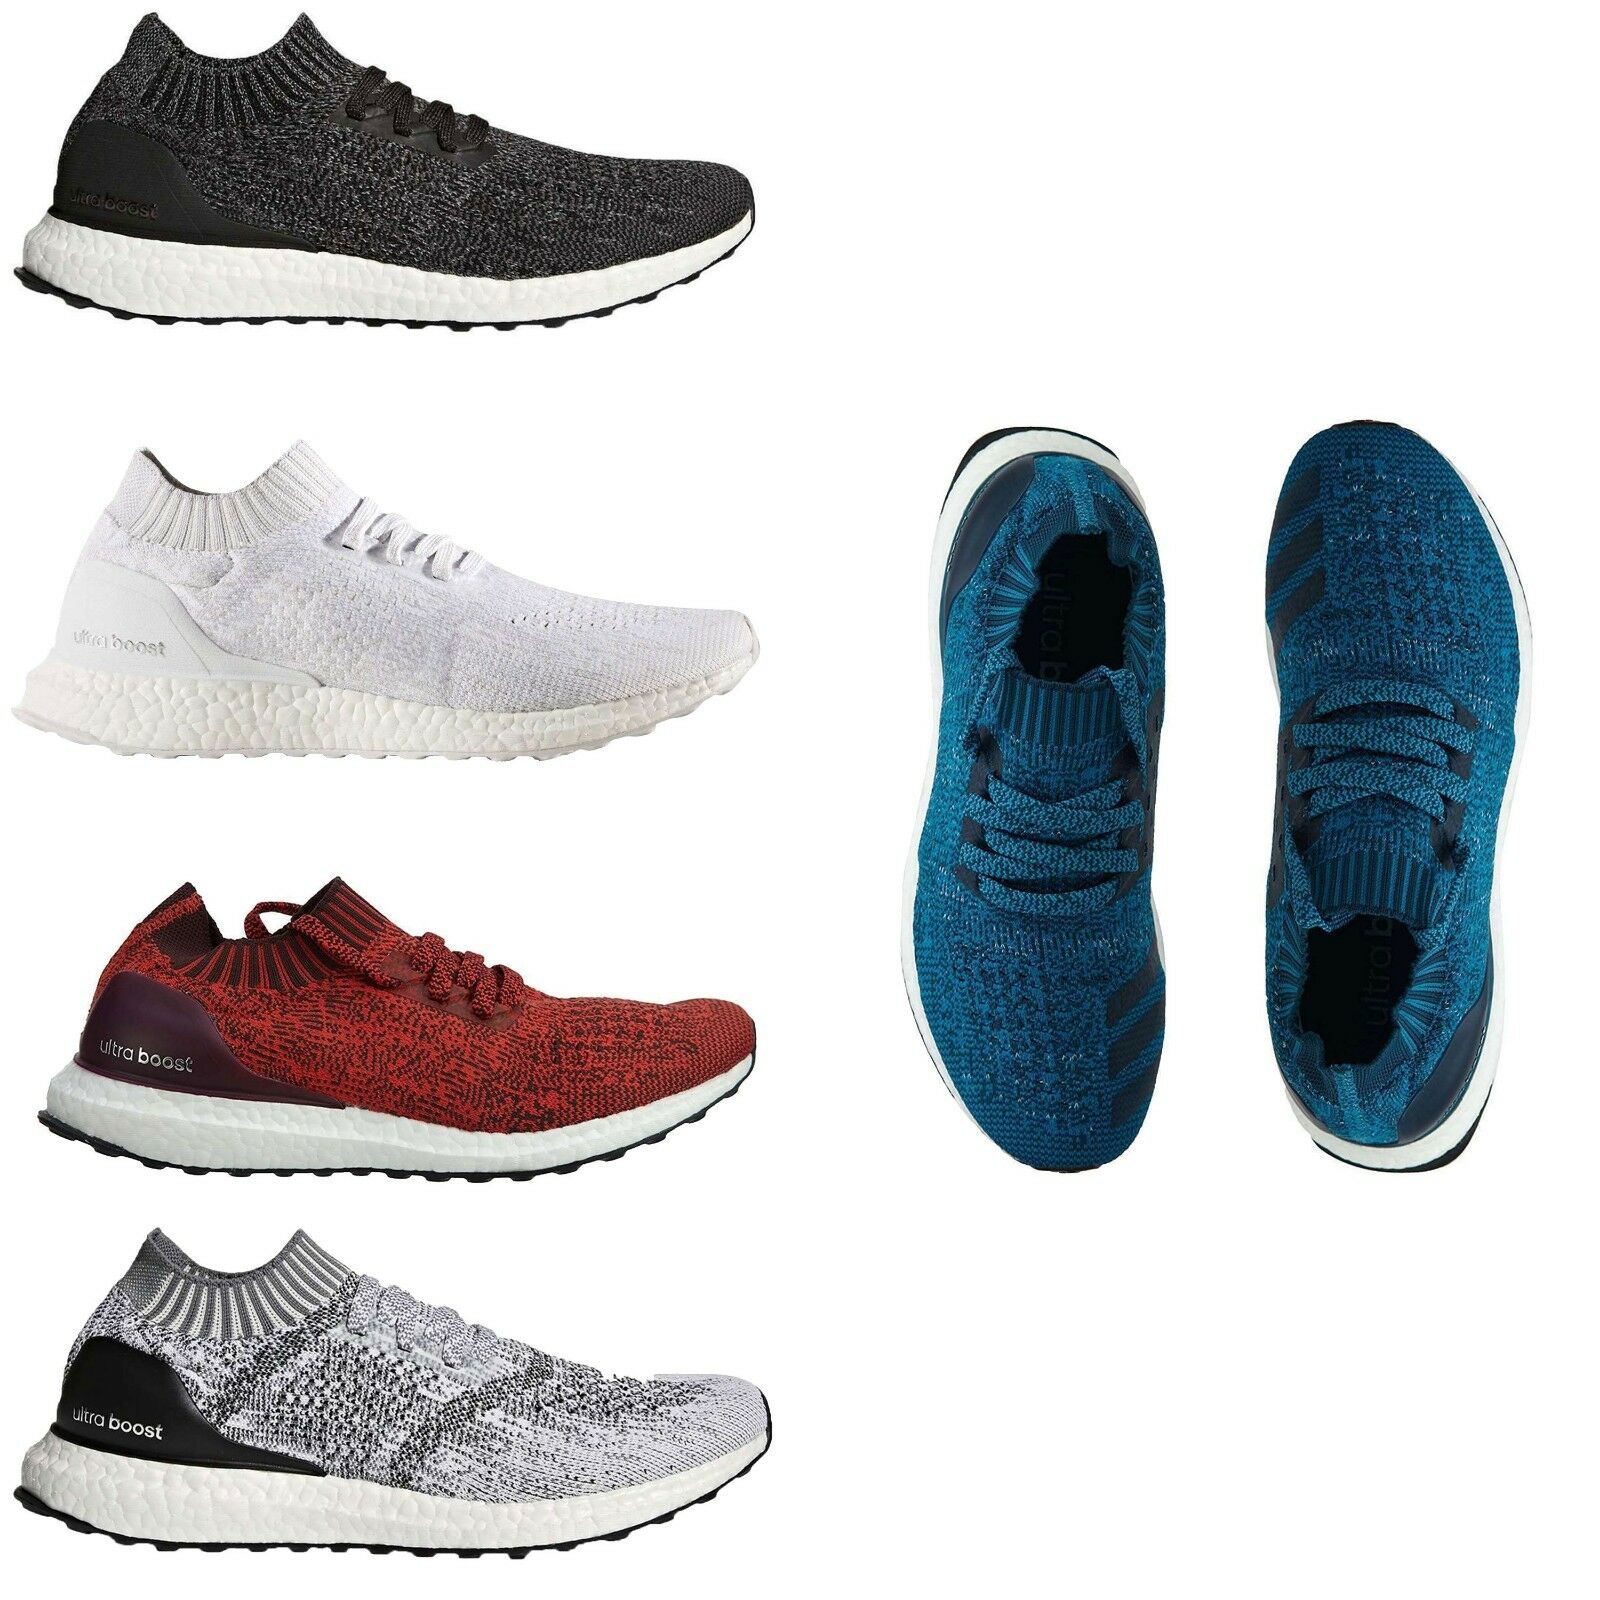 Adidas Men's Ultraboost Uncaged PrimeKnit Running Training shoes Sneakers NEW